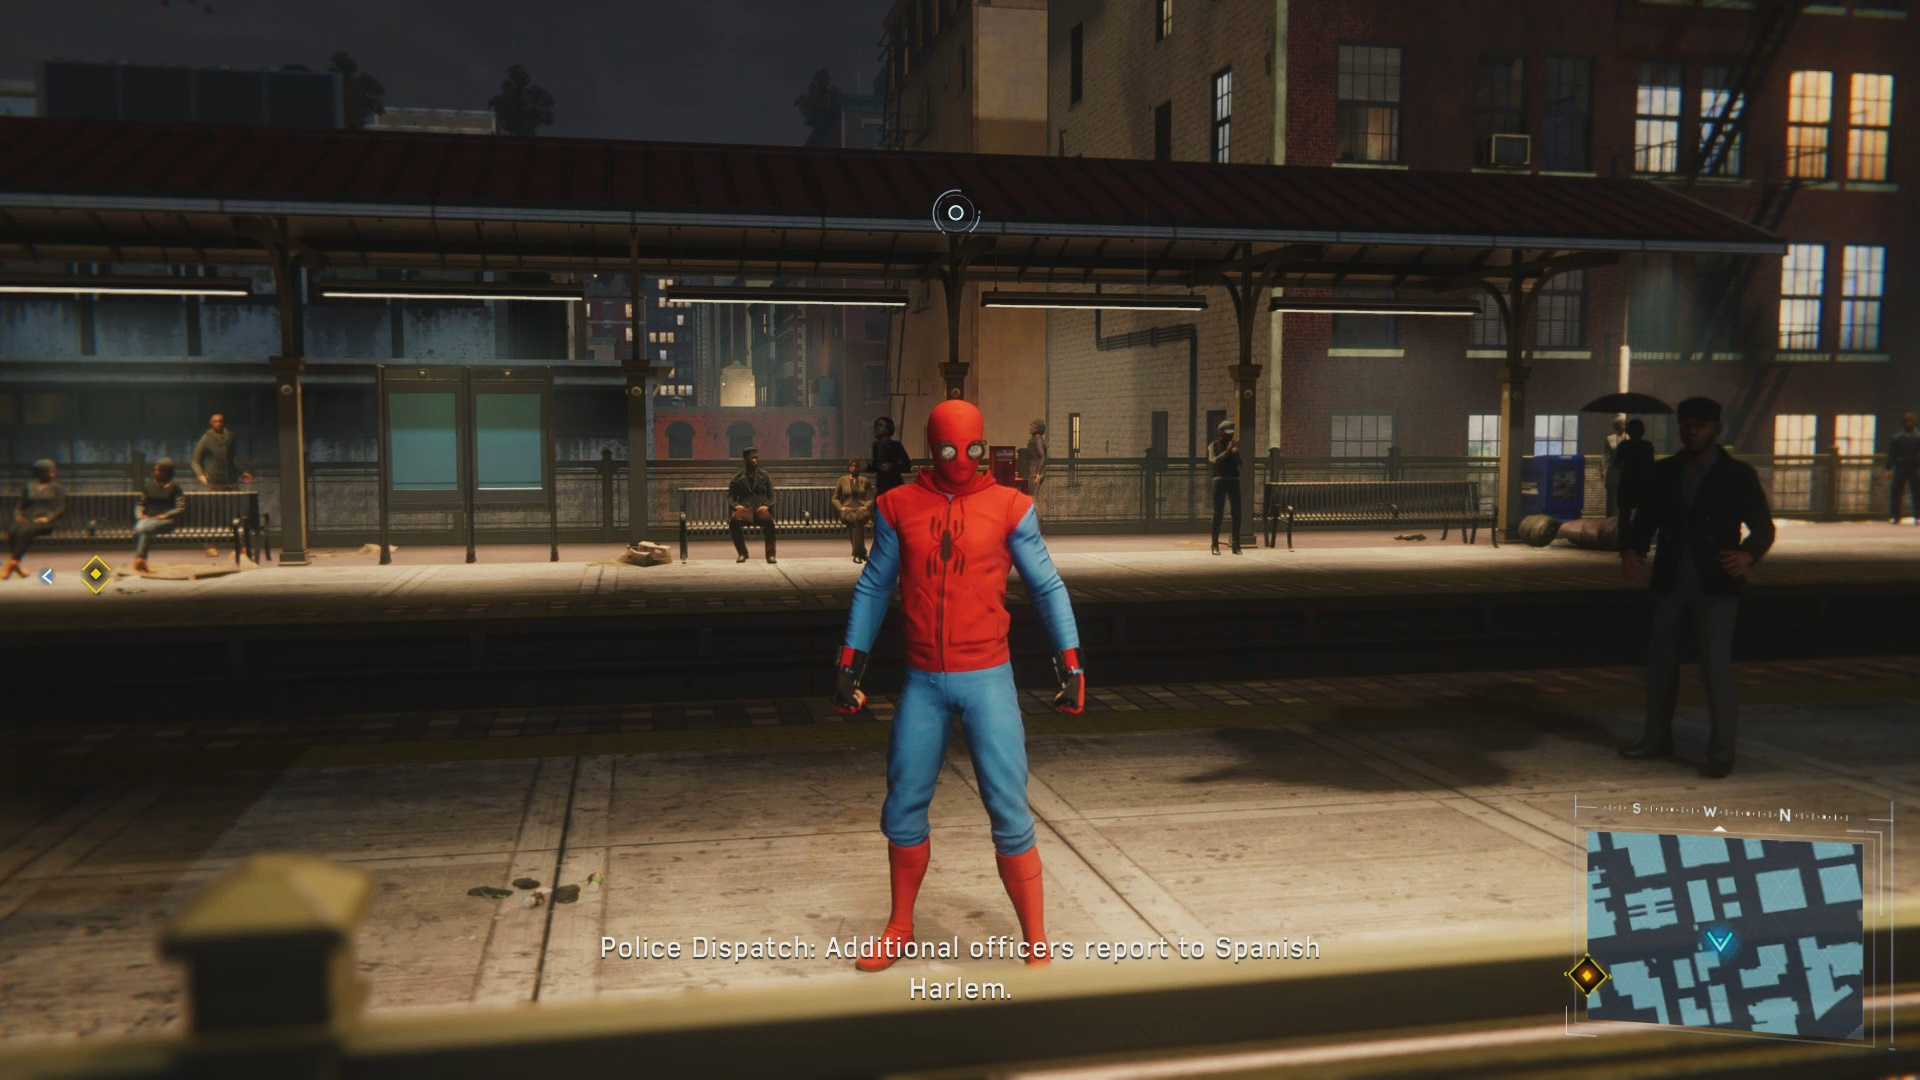 How To Get The Homemade Suit In Spider Man Ps4